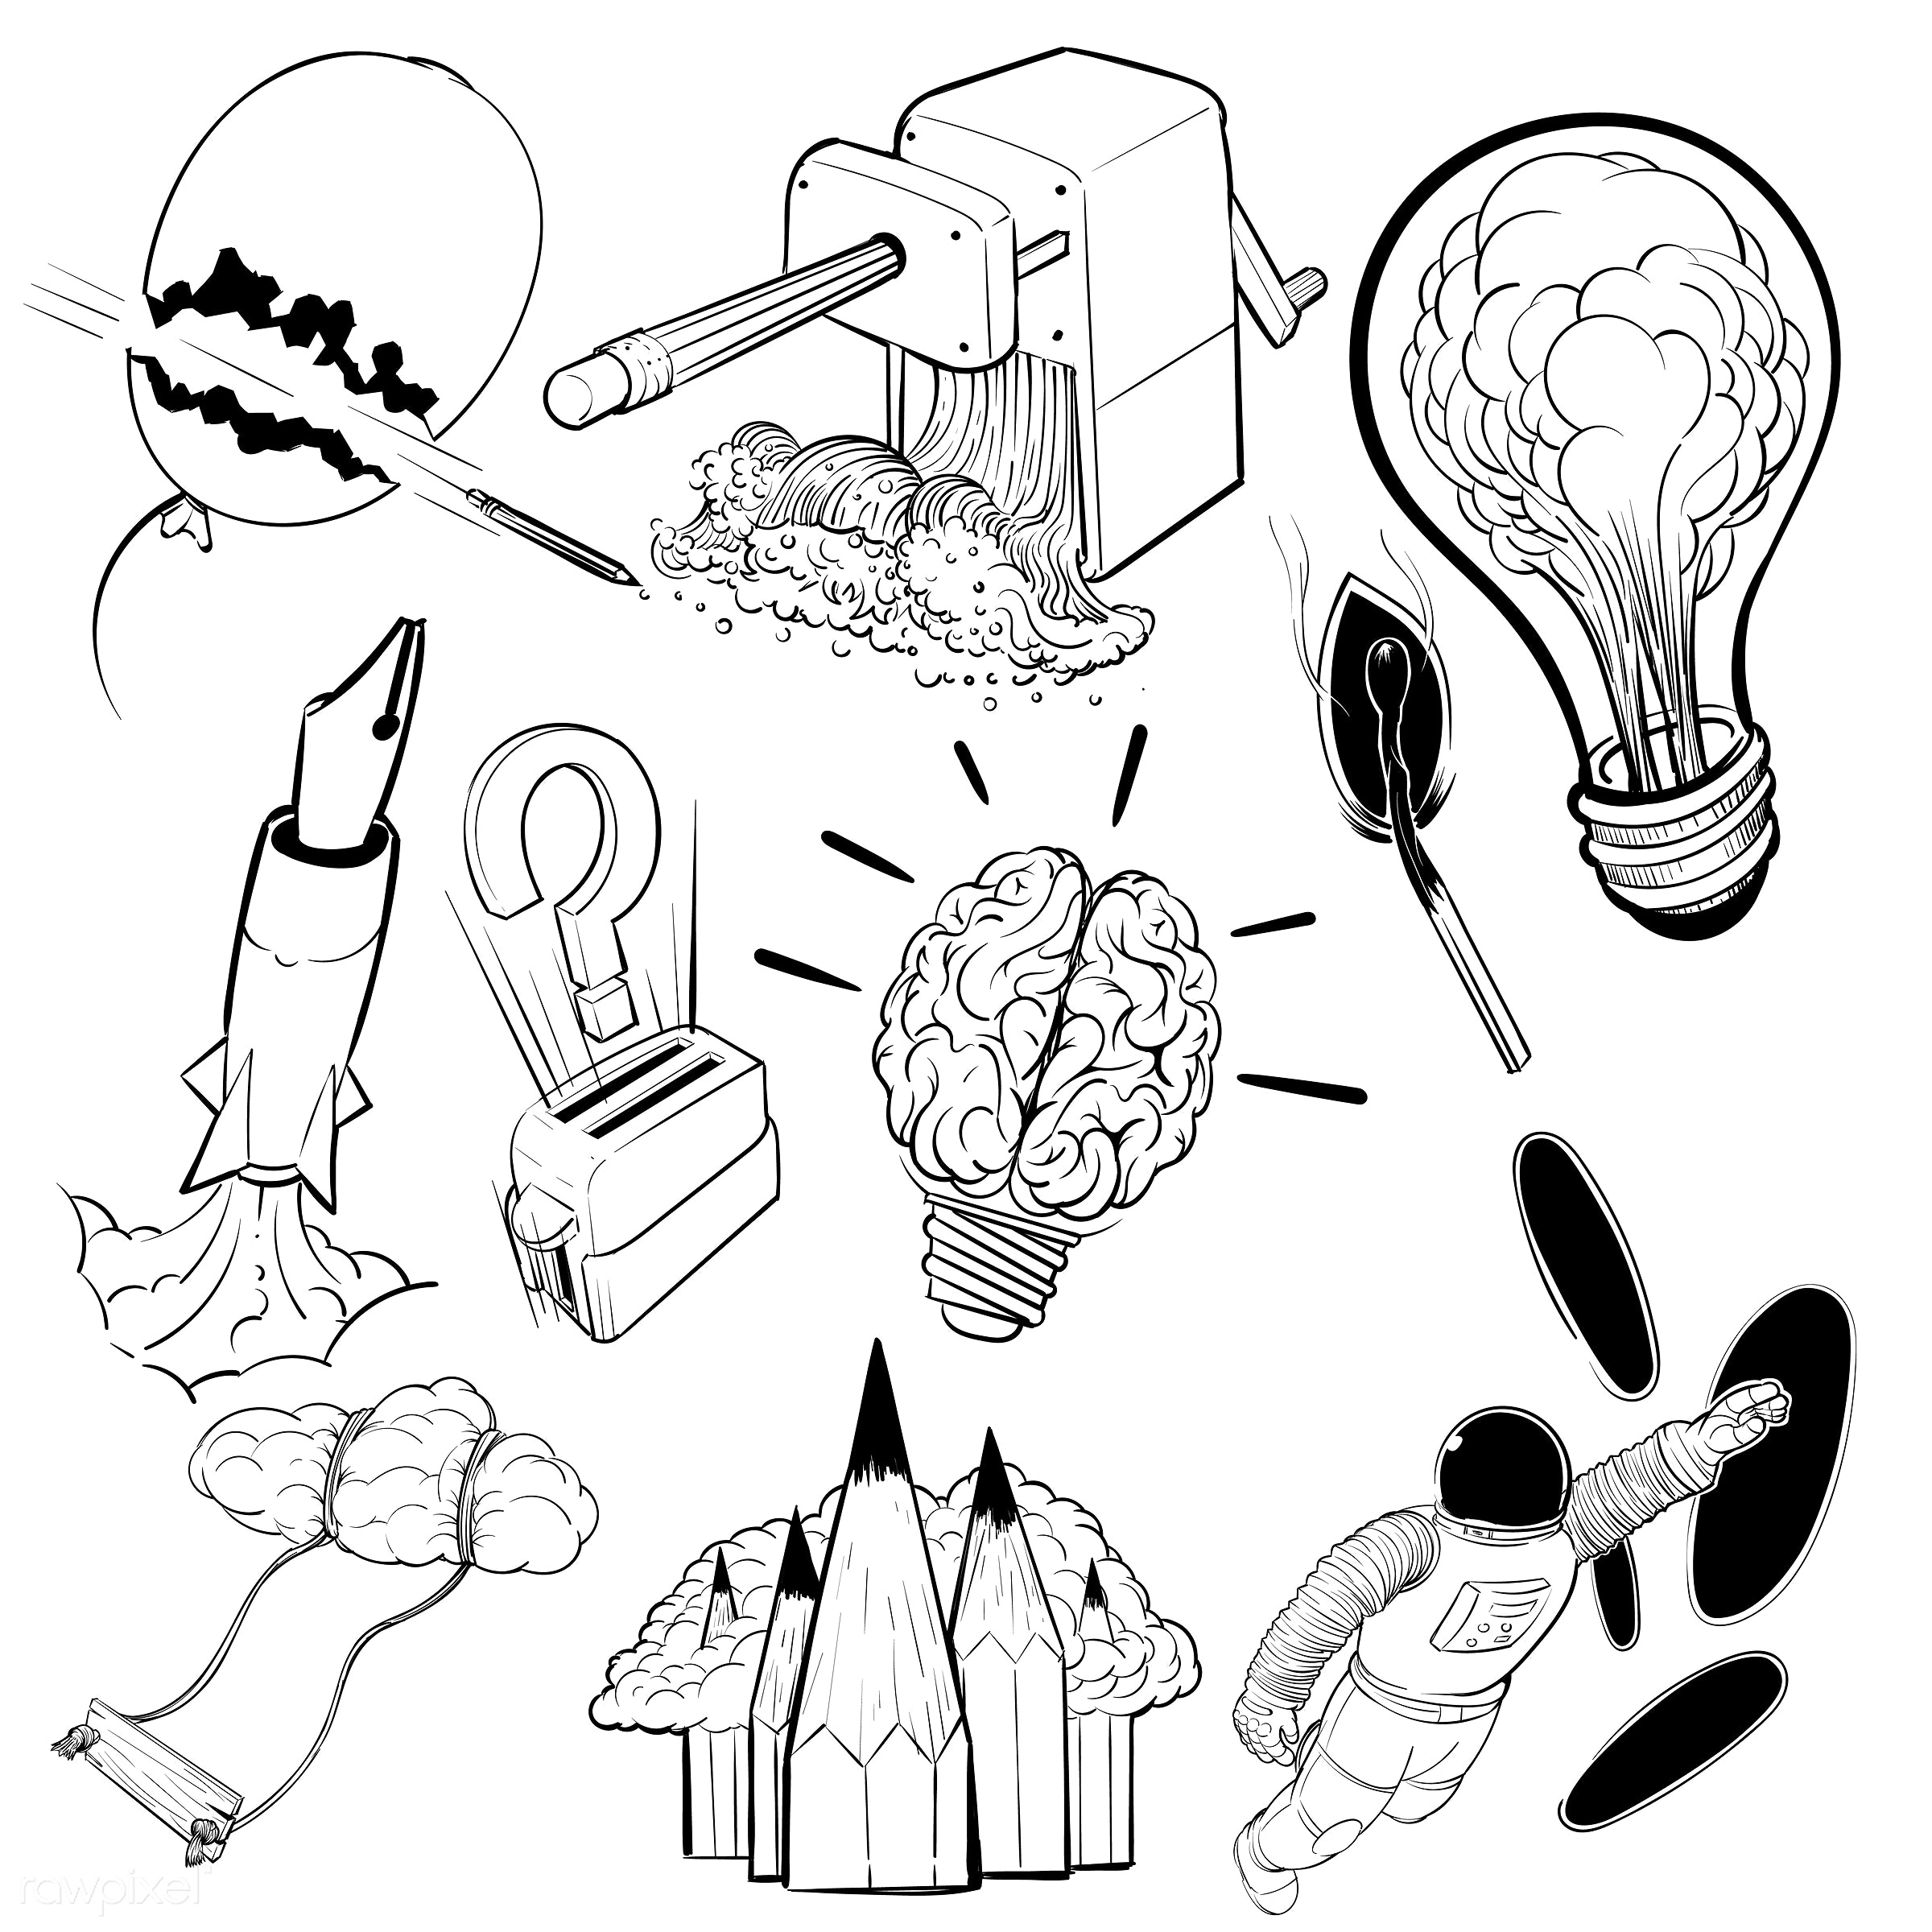 Hand drawing illustration set of creative ideas concept - attitude, brainstorm, art, artwork, collection, creative, design,...